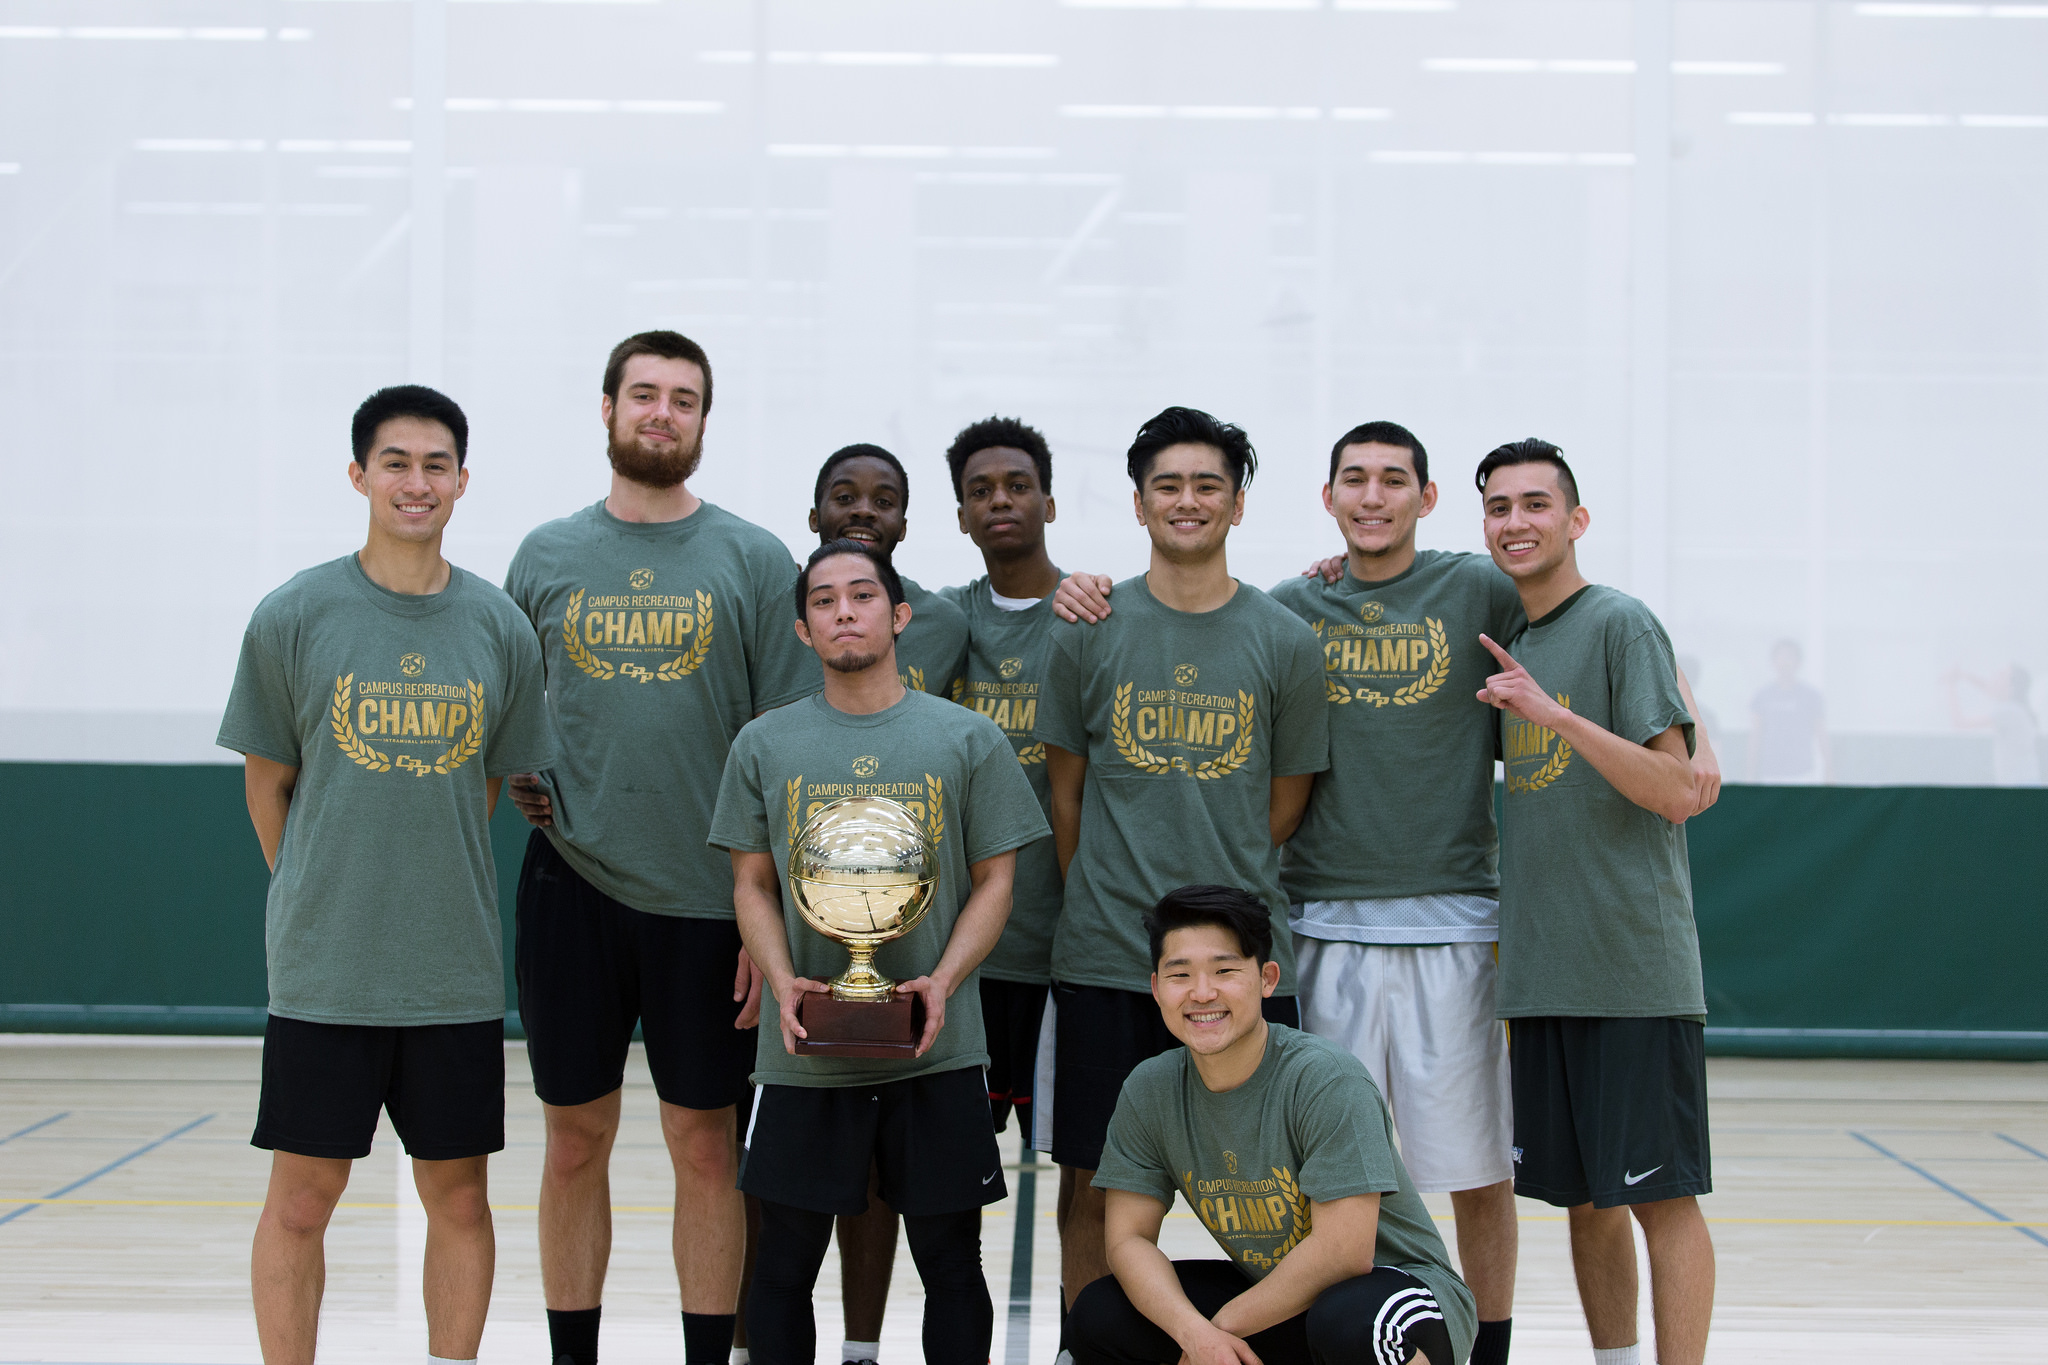 Winter 2017 Intramural Sports Championship Recap The Campus Crop